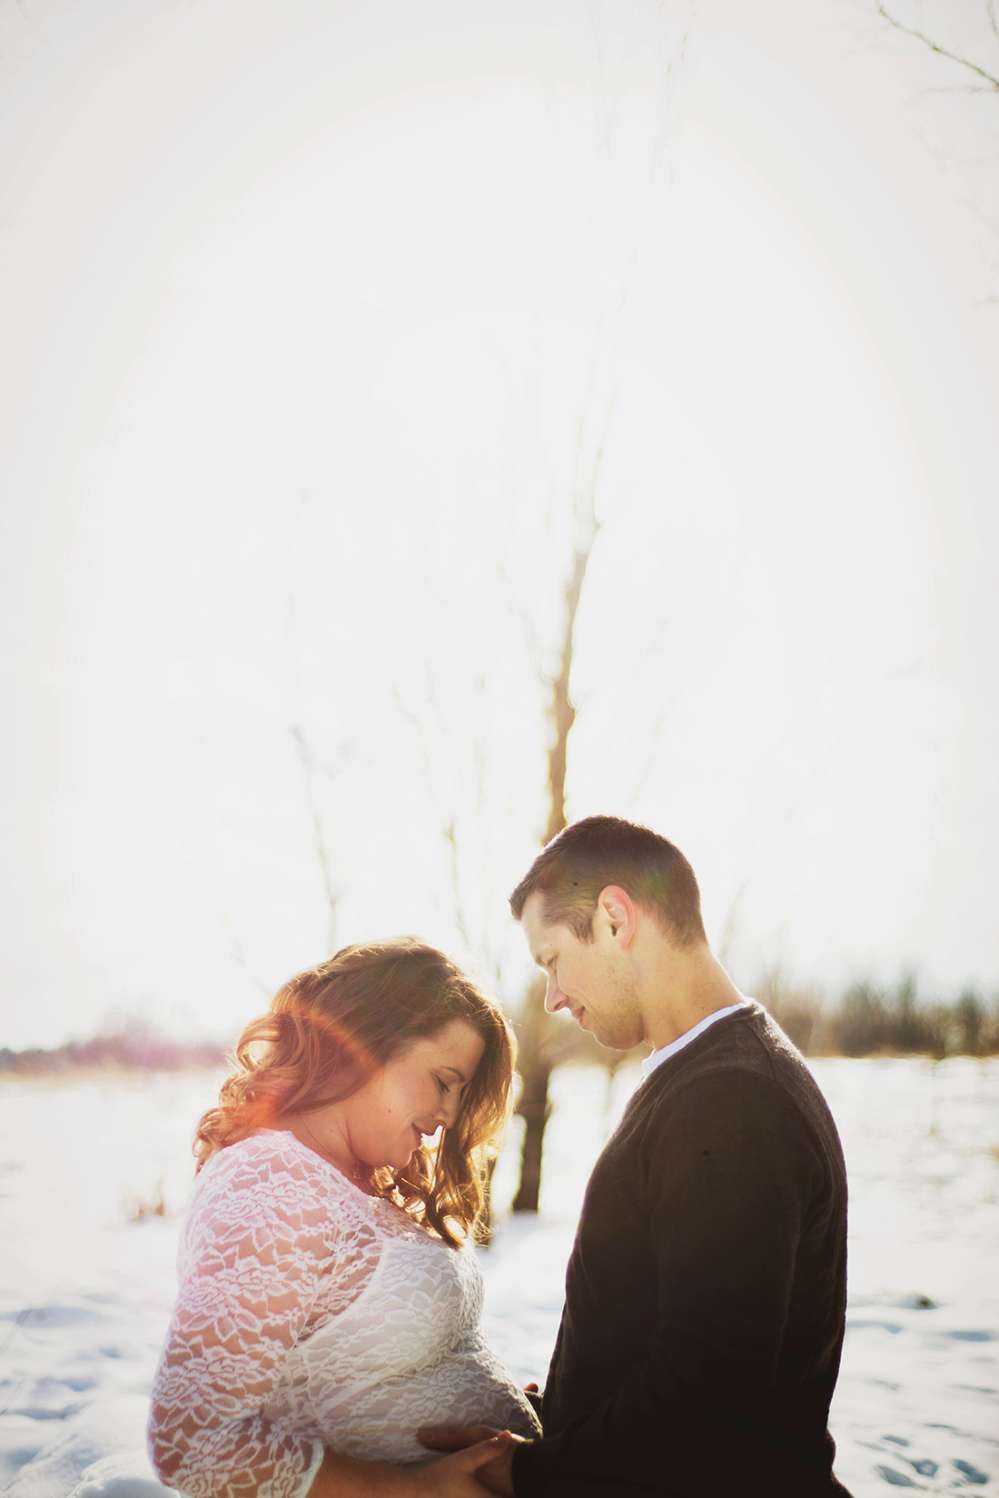 Samantha & Ryan - {Maternity Shoot} by Lacy Marie Photography in Omaha NE. www.lacymariephotography.com